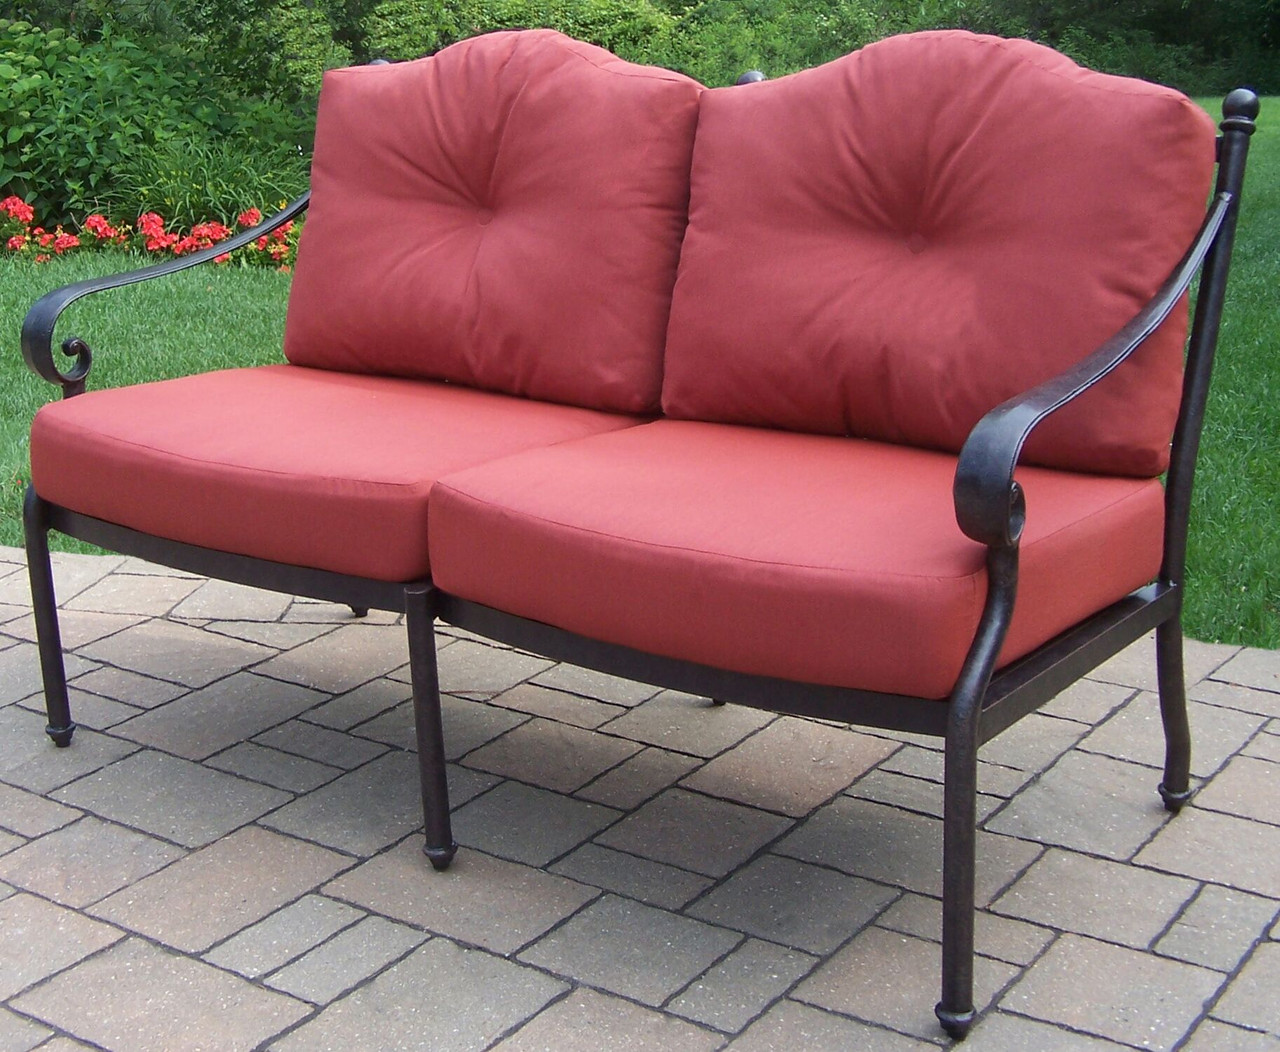 56 black outdoor patio seating loveseat red cushions